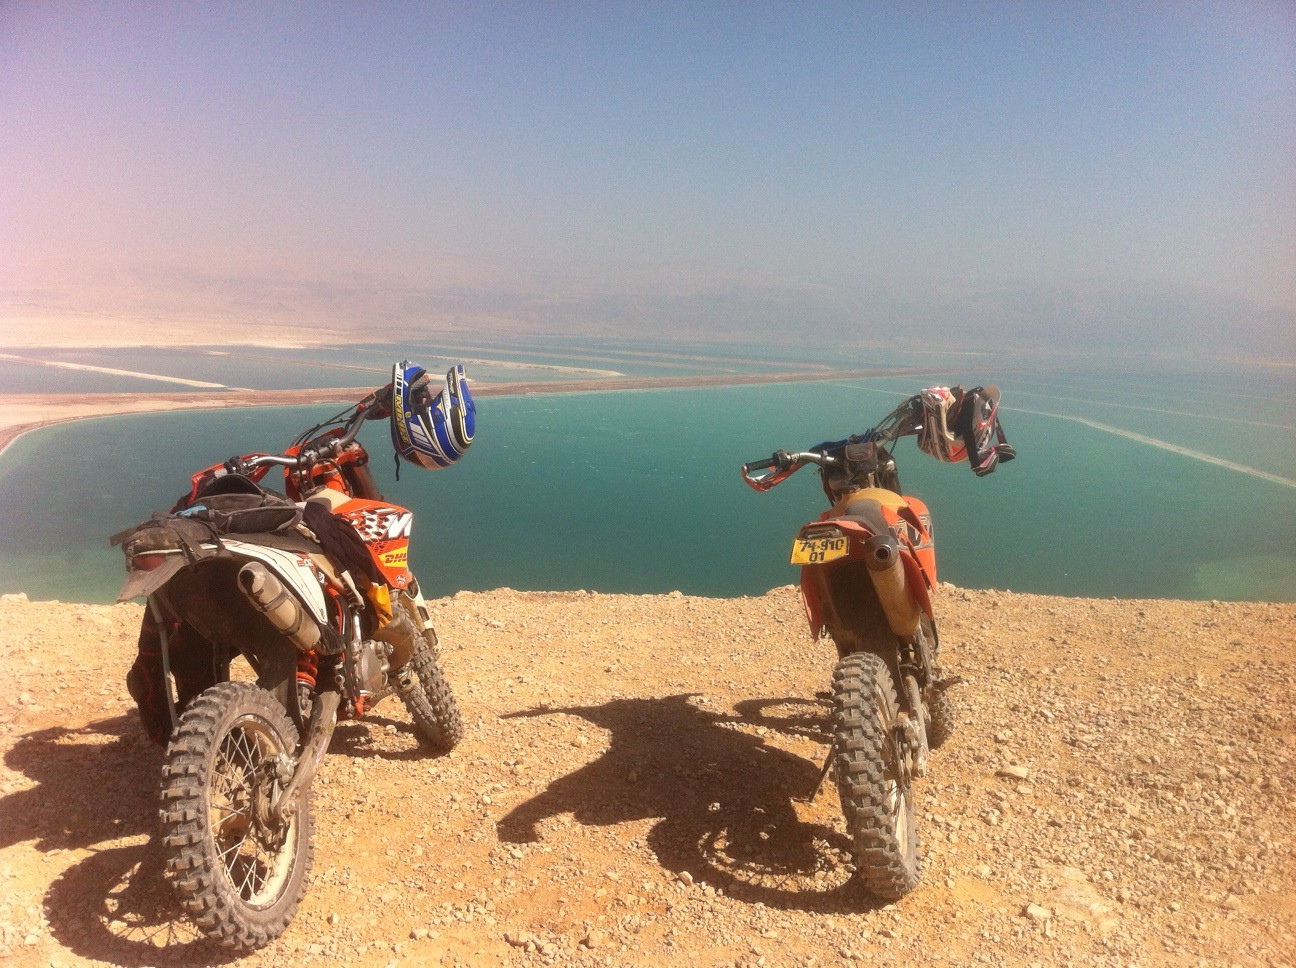 Overlooking the Dead Sea.